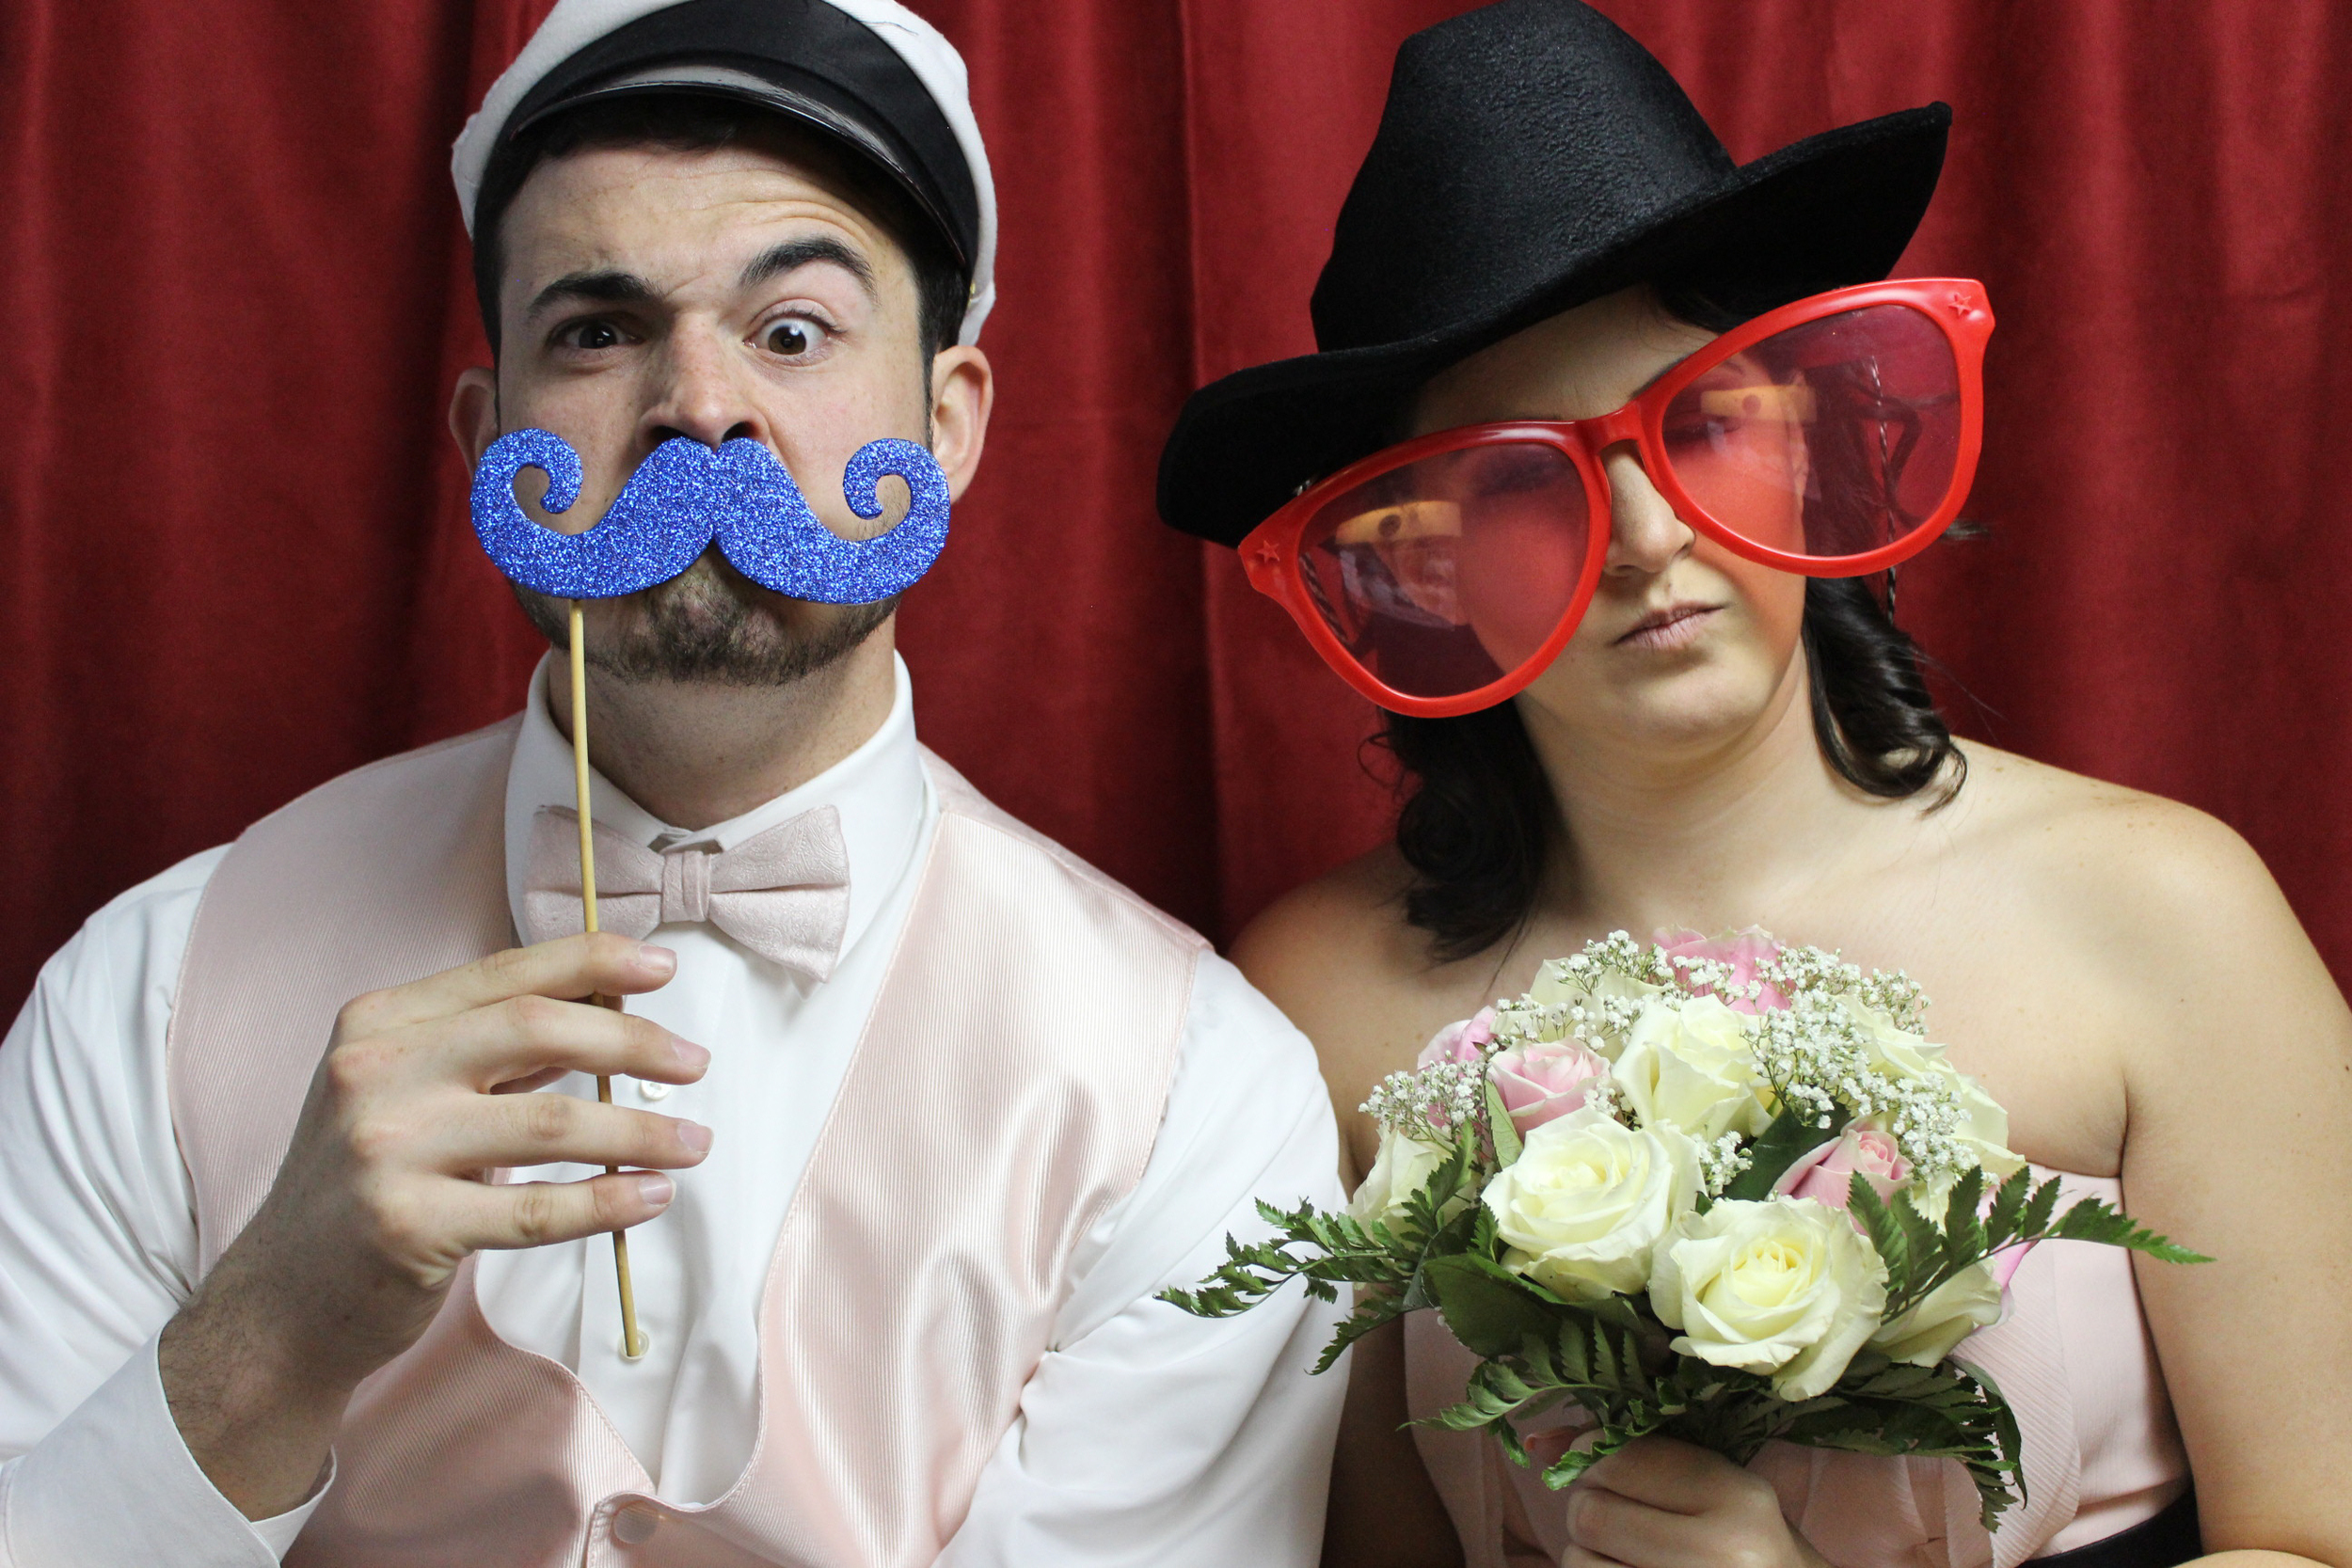 Ann-Marie & Maurice Photo Booth Wedding (110).jpg